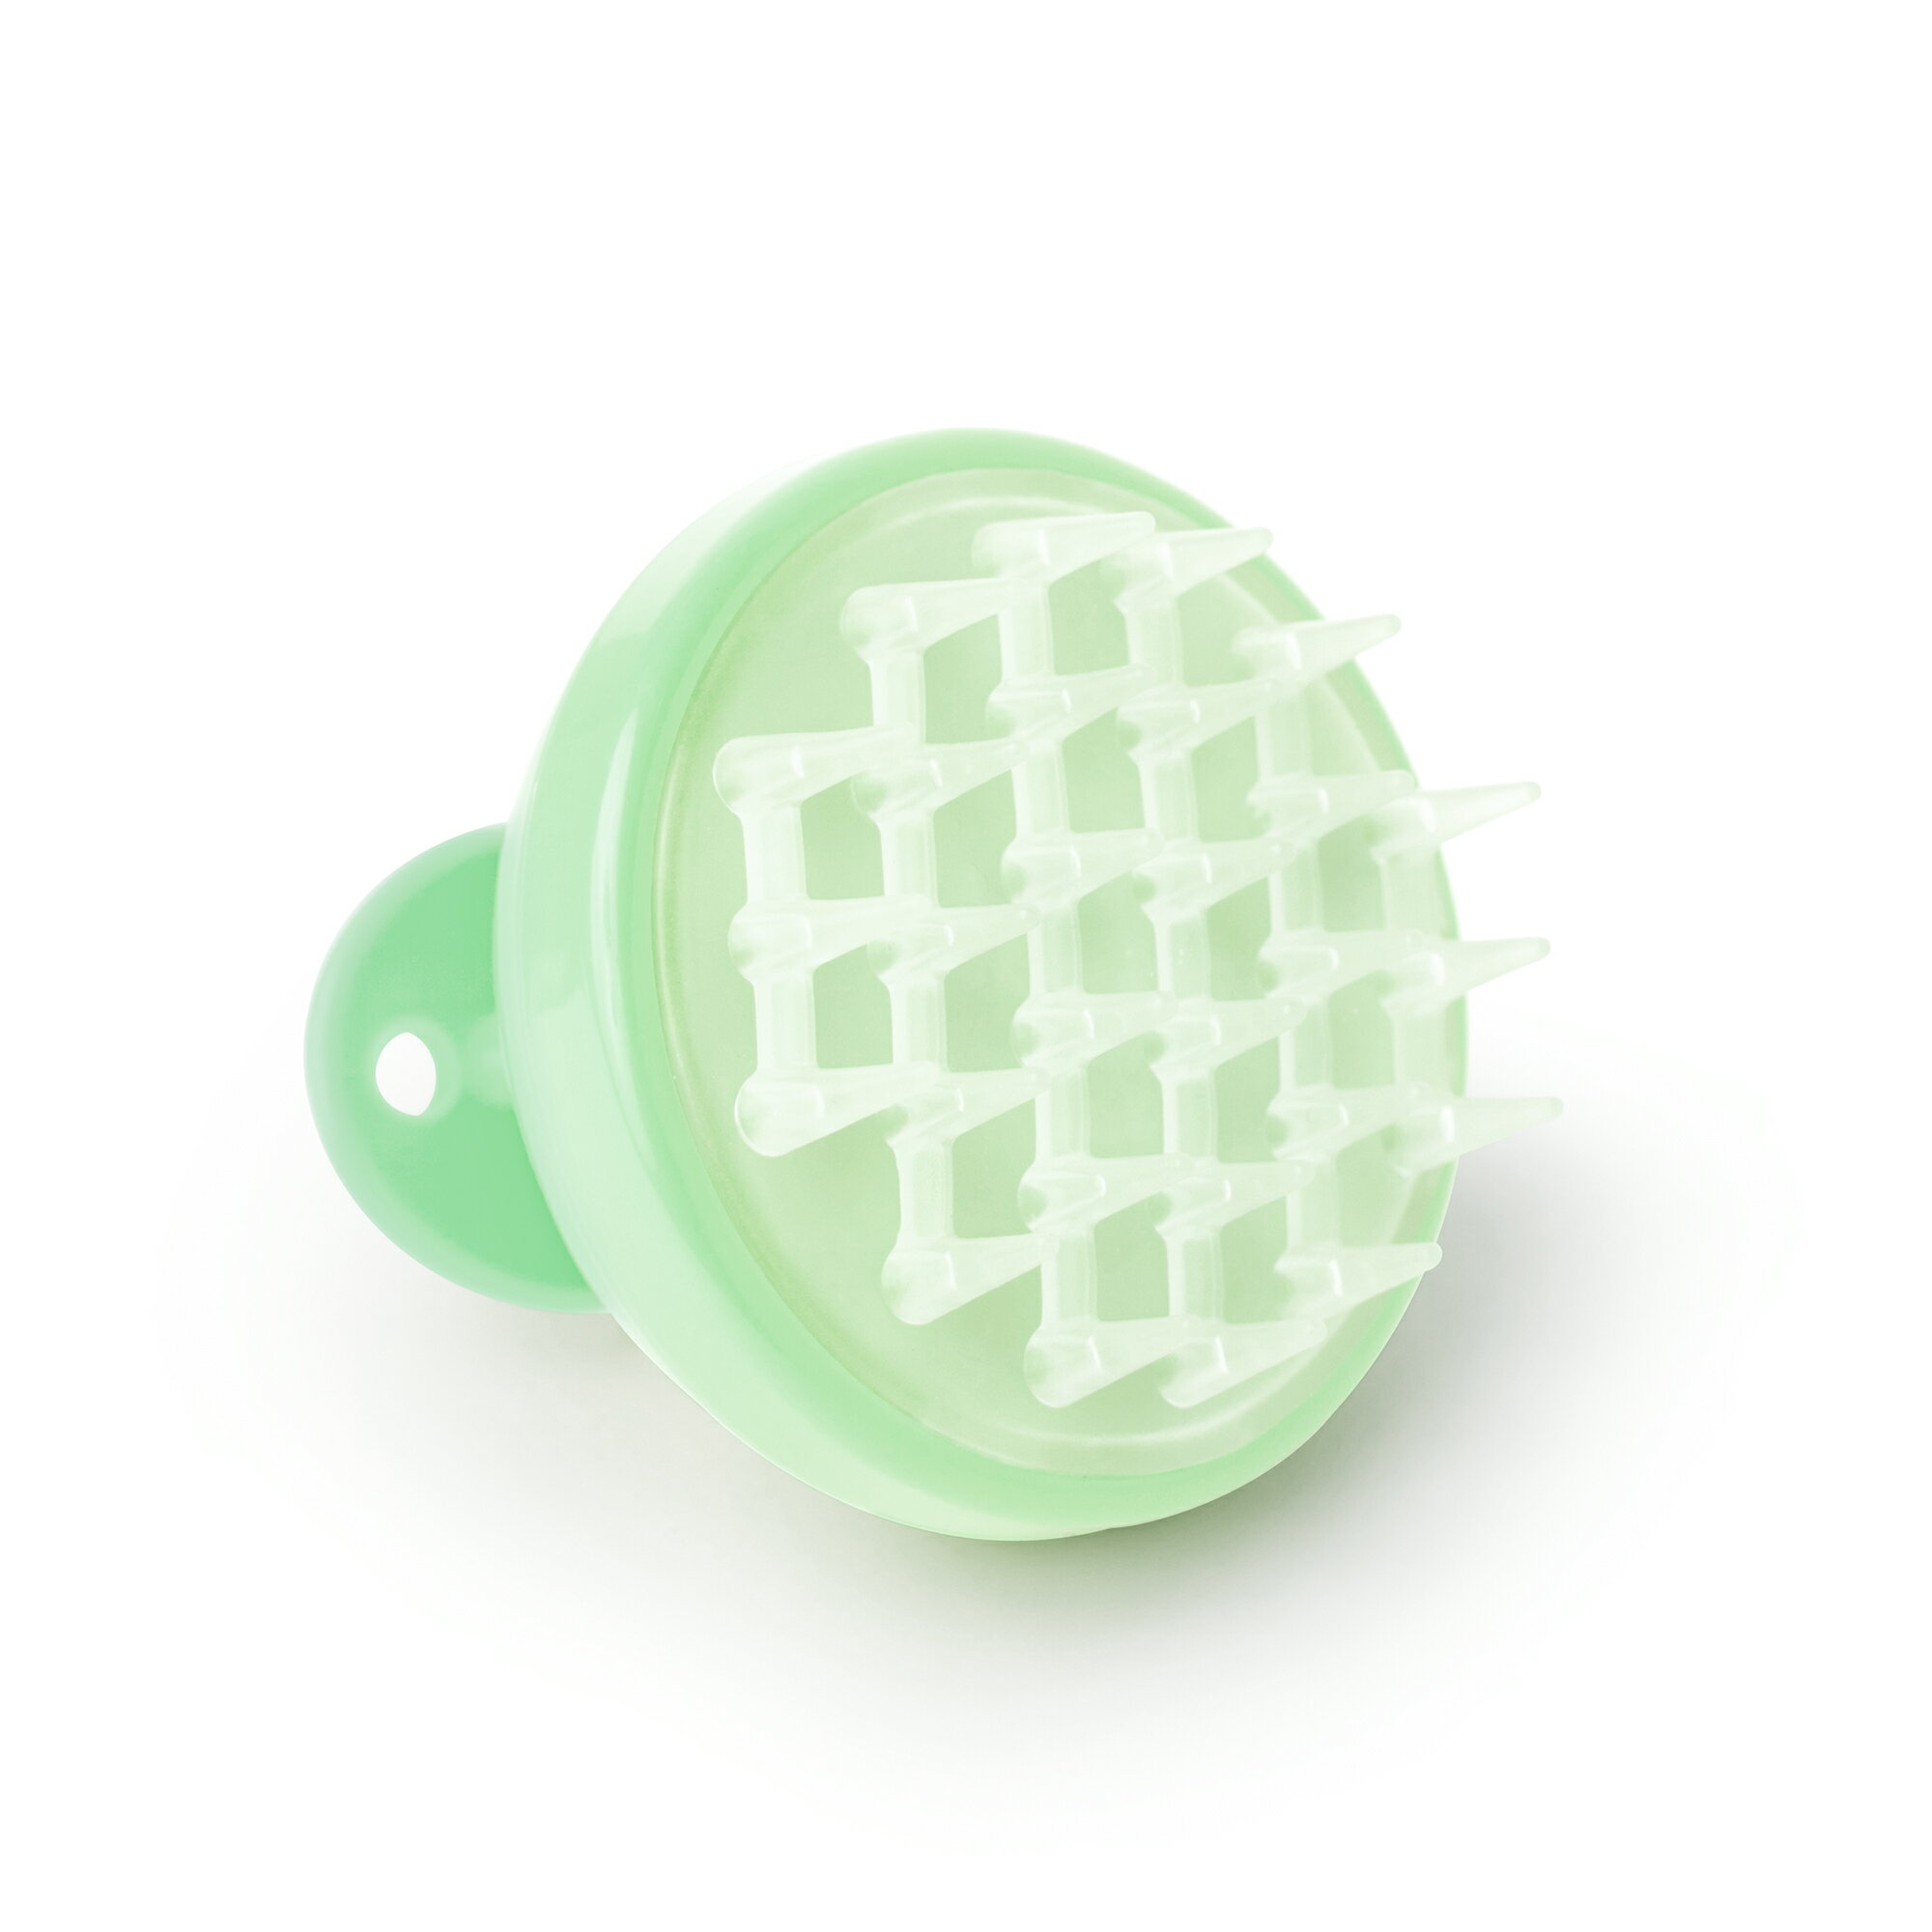 Vanity Planet Groove Vibrating Scalp Massager - Minty Green 0